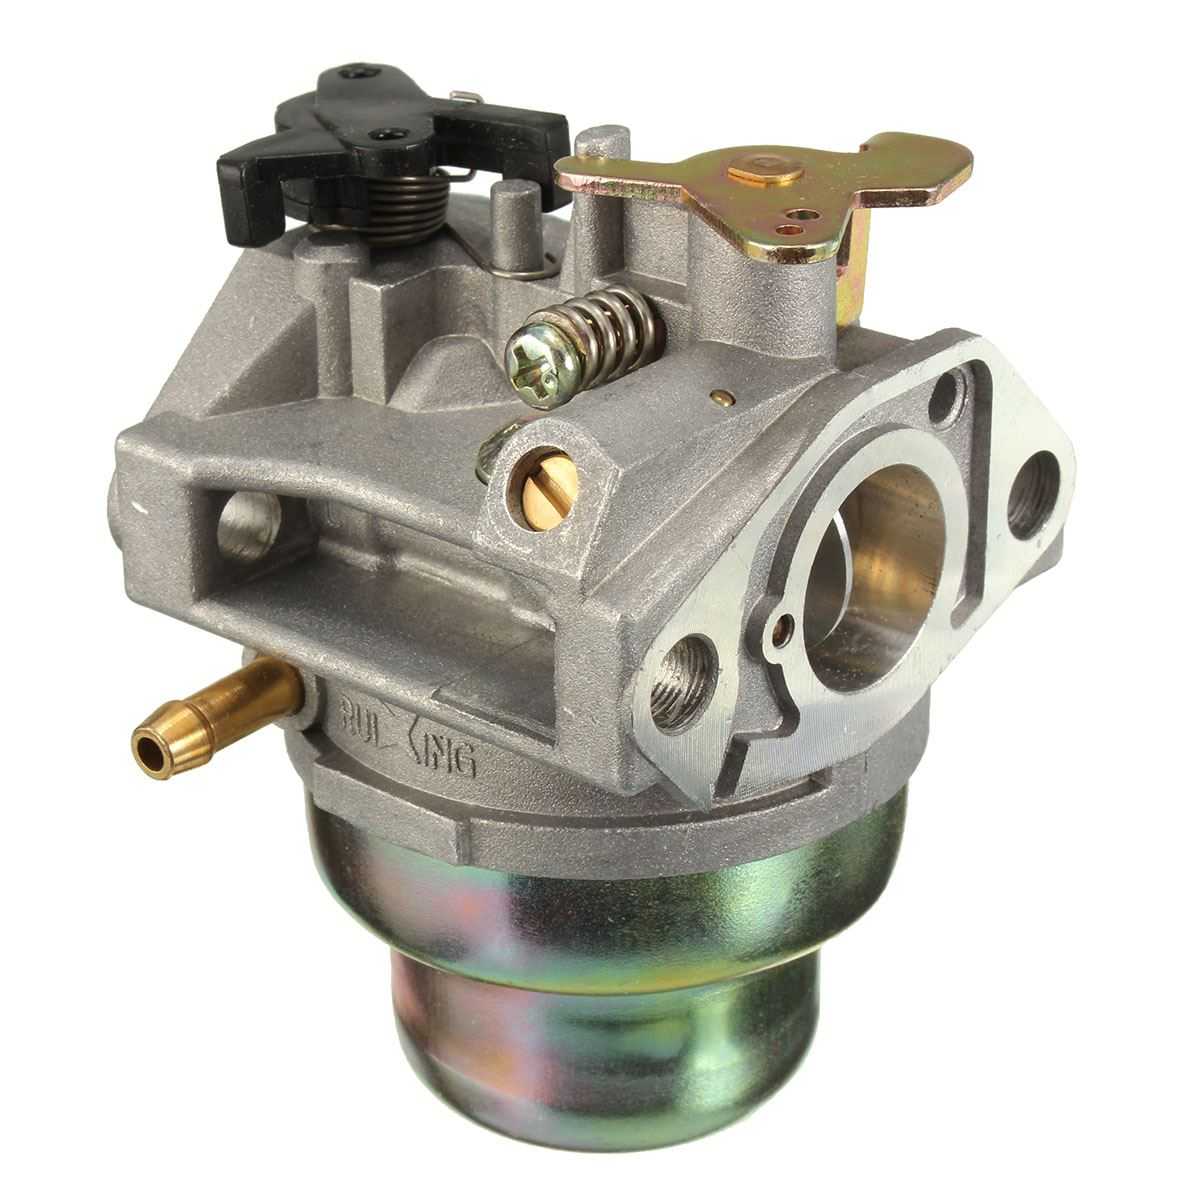 Aliexpress.com : Buy Adjustable Carburetor Carb For HONDA GCV160 HRB216  HRS216 HRR216 HRT216 HRZ216 from Reliable carb carburetor suppliers on  Awesome For ...